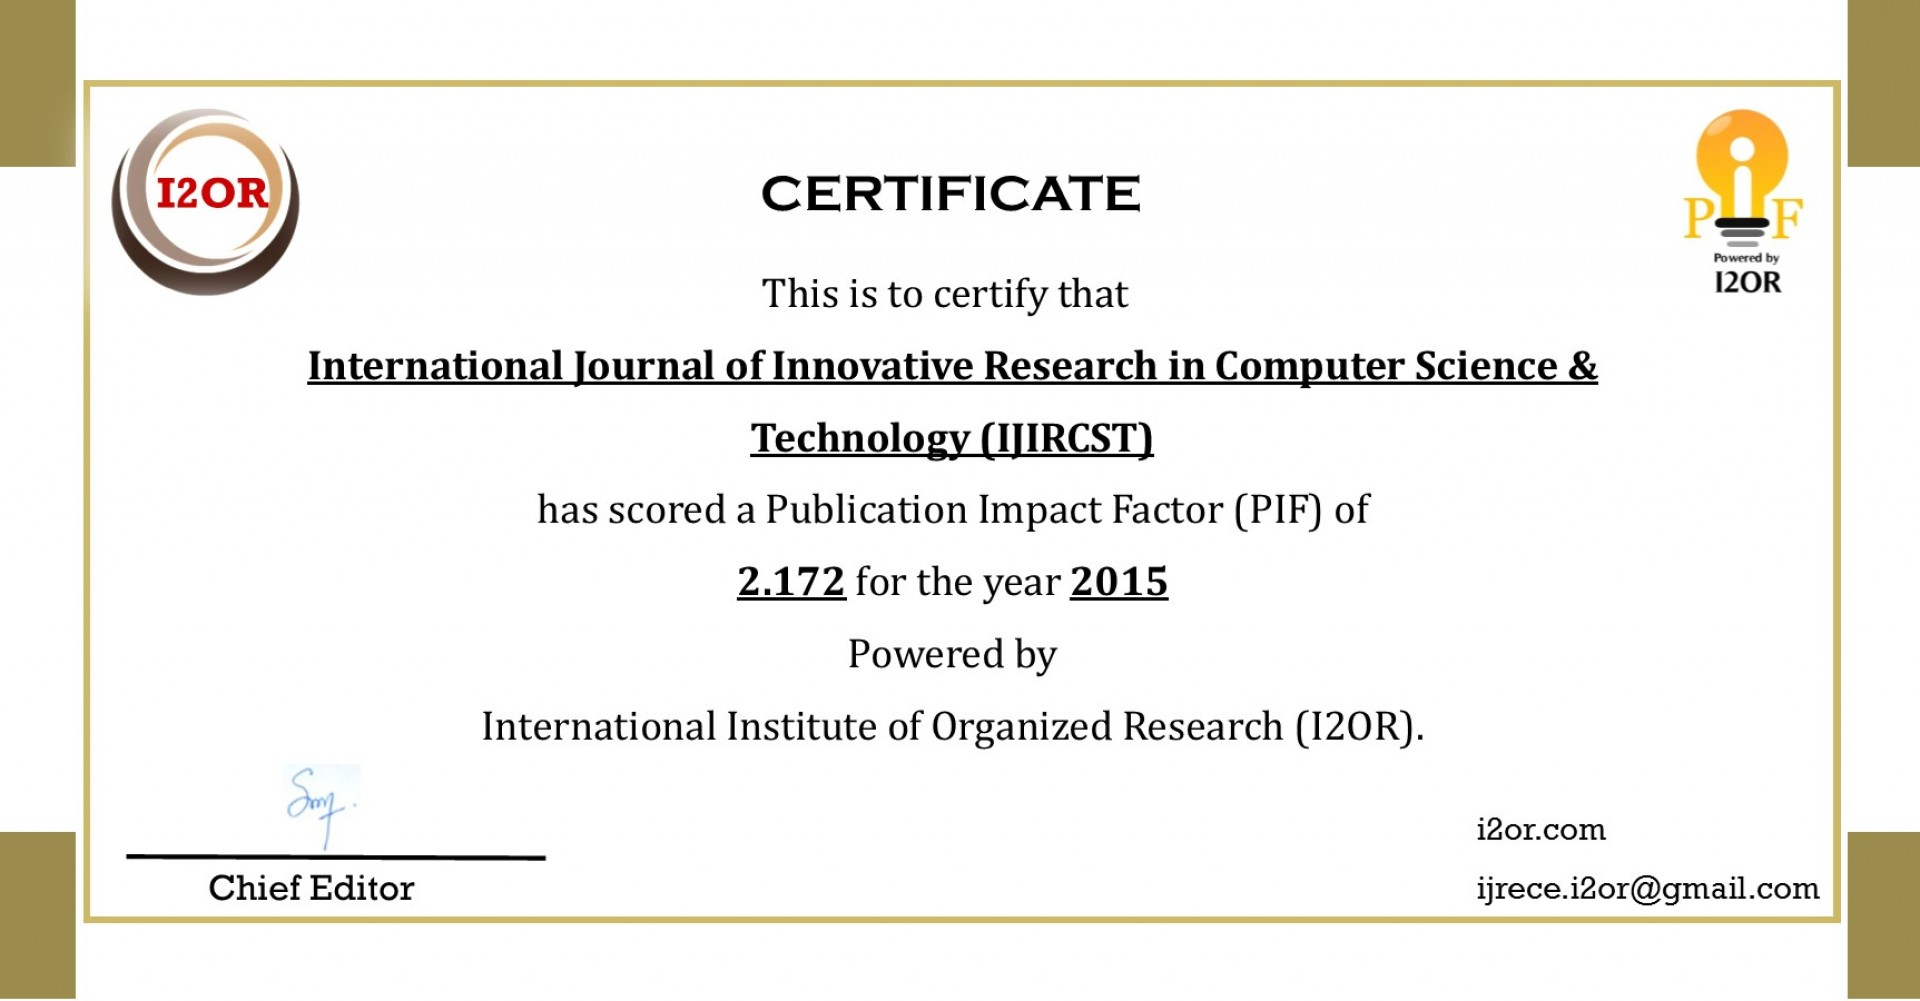 018 Research Paper Ijircst Impactfactor How To Publish In Computer Fearsome A Science 1920